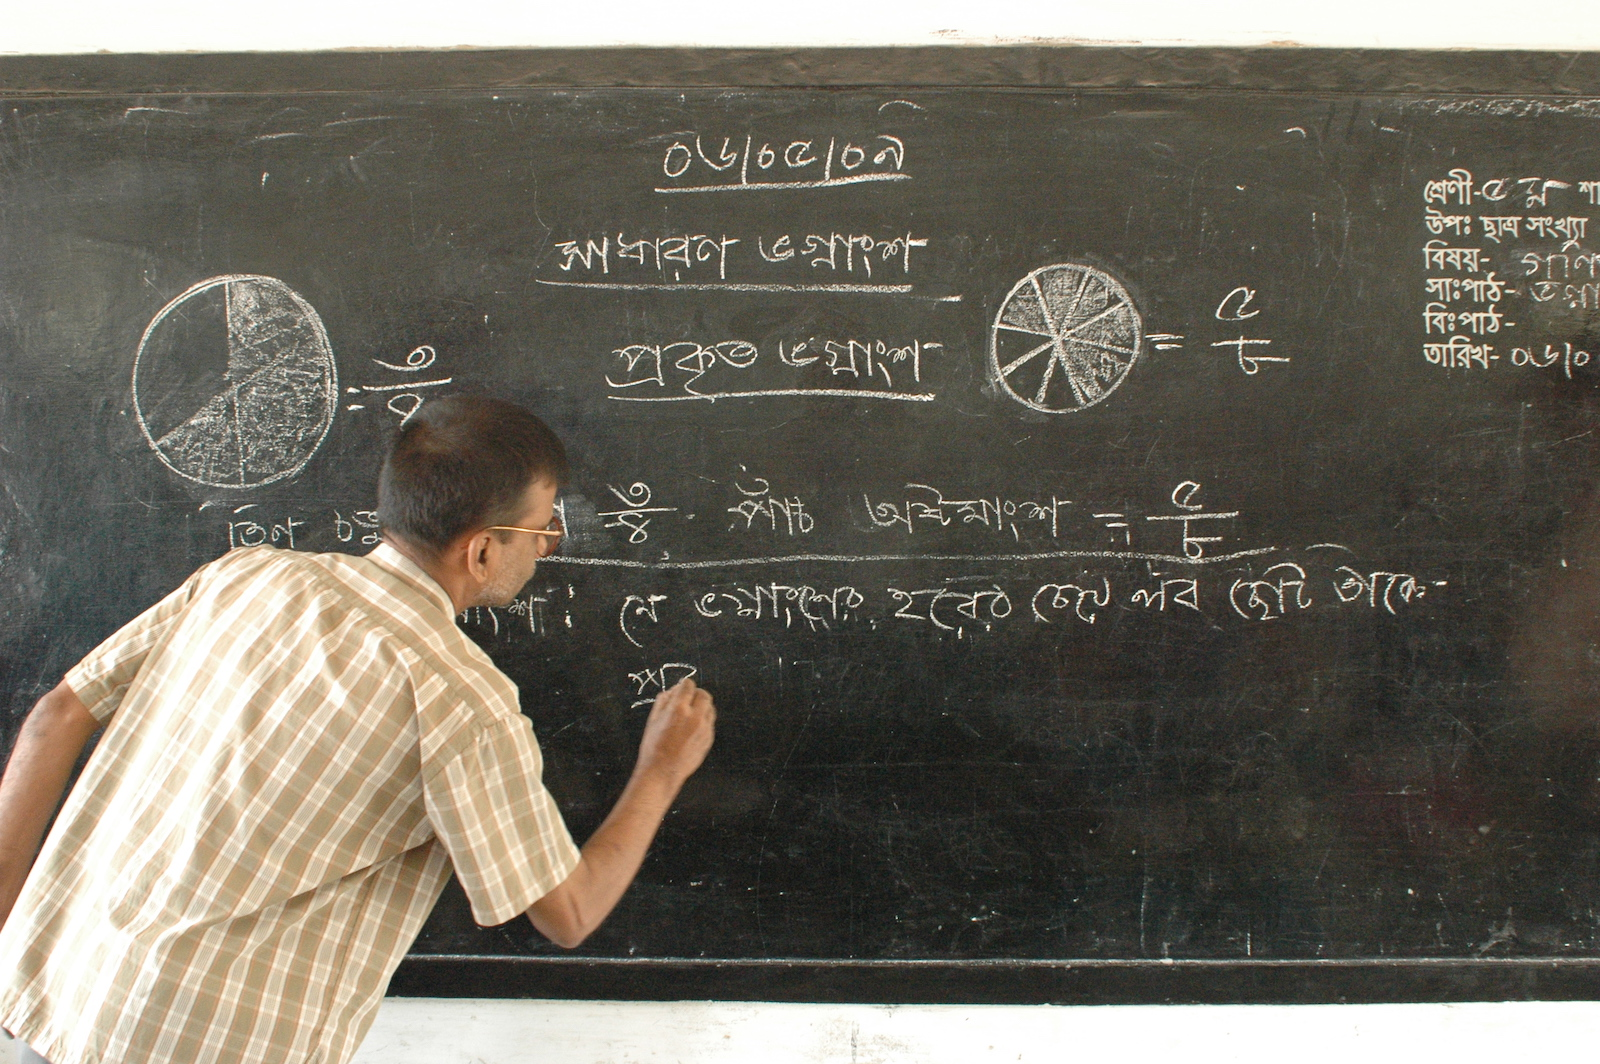 Language of Bangladesh